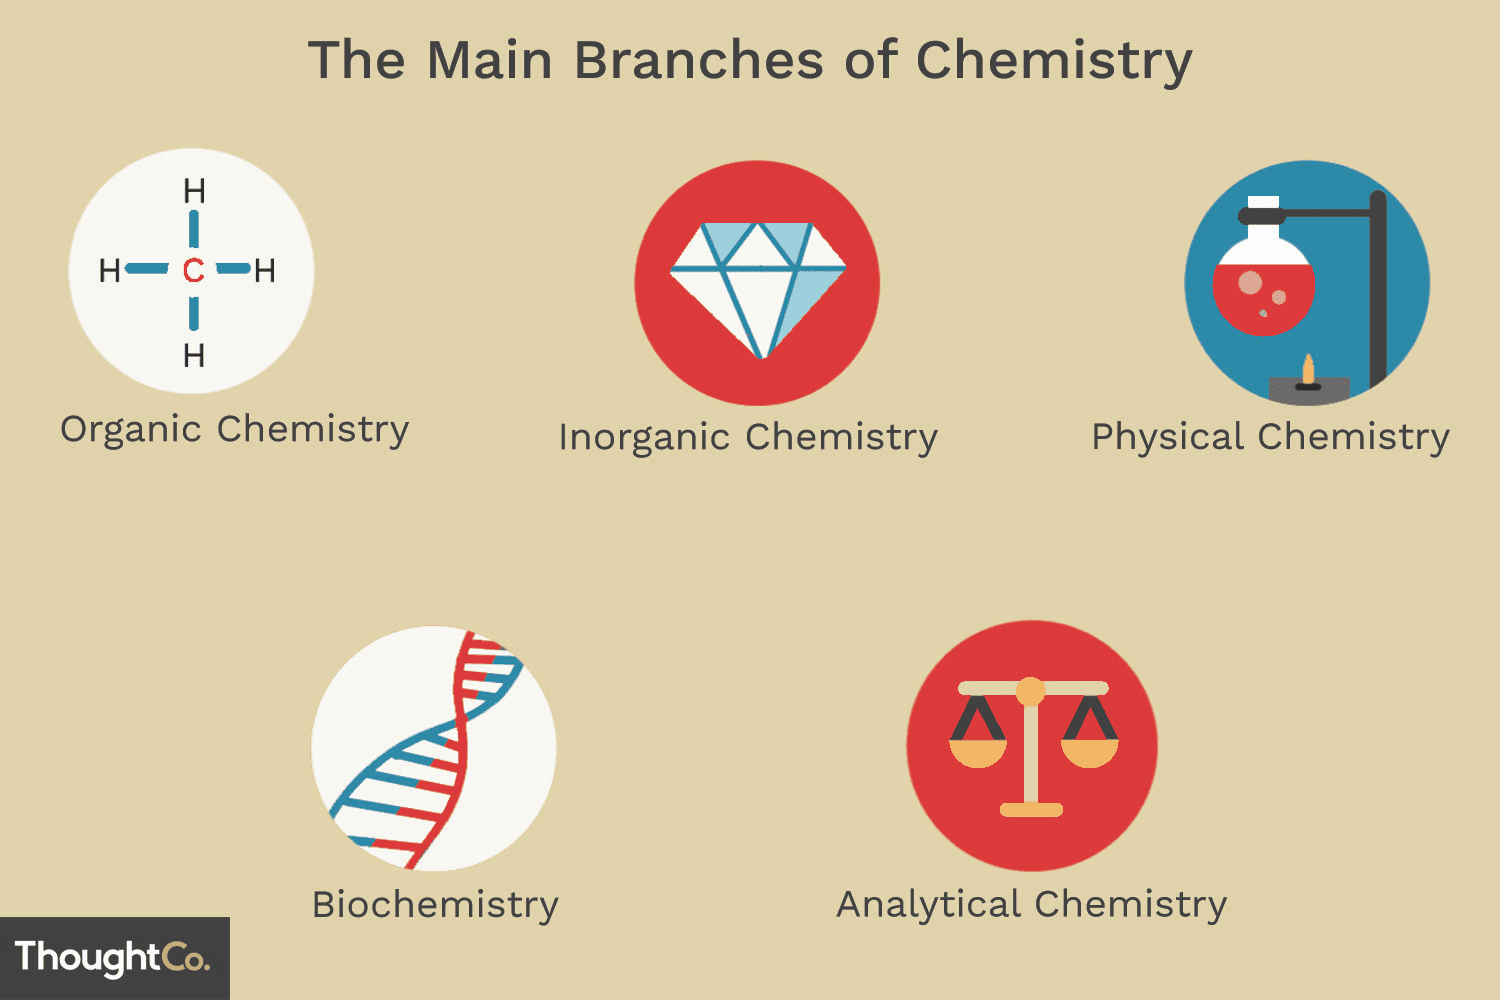 The 5 Main Branches of Chemistry